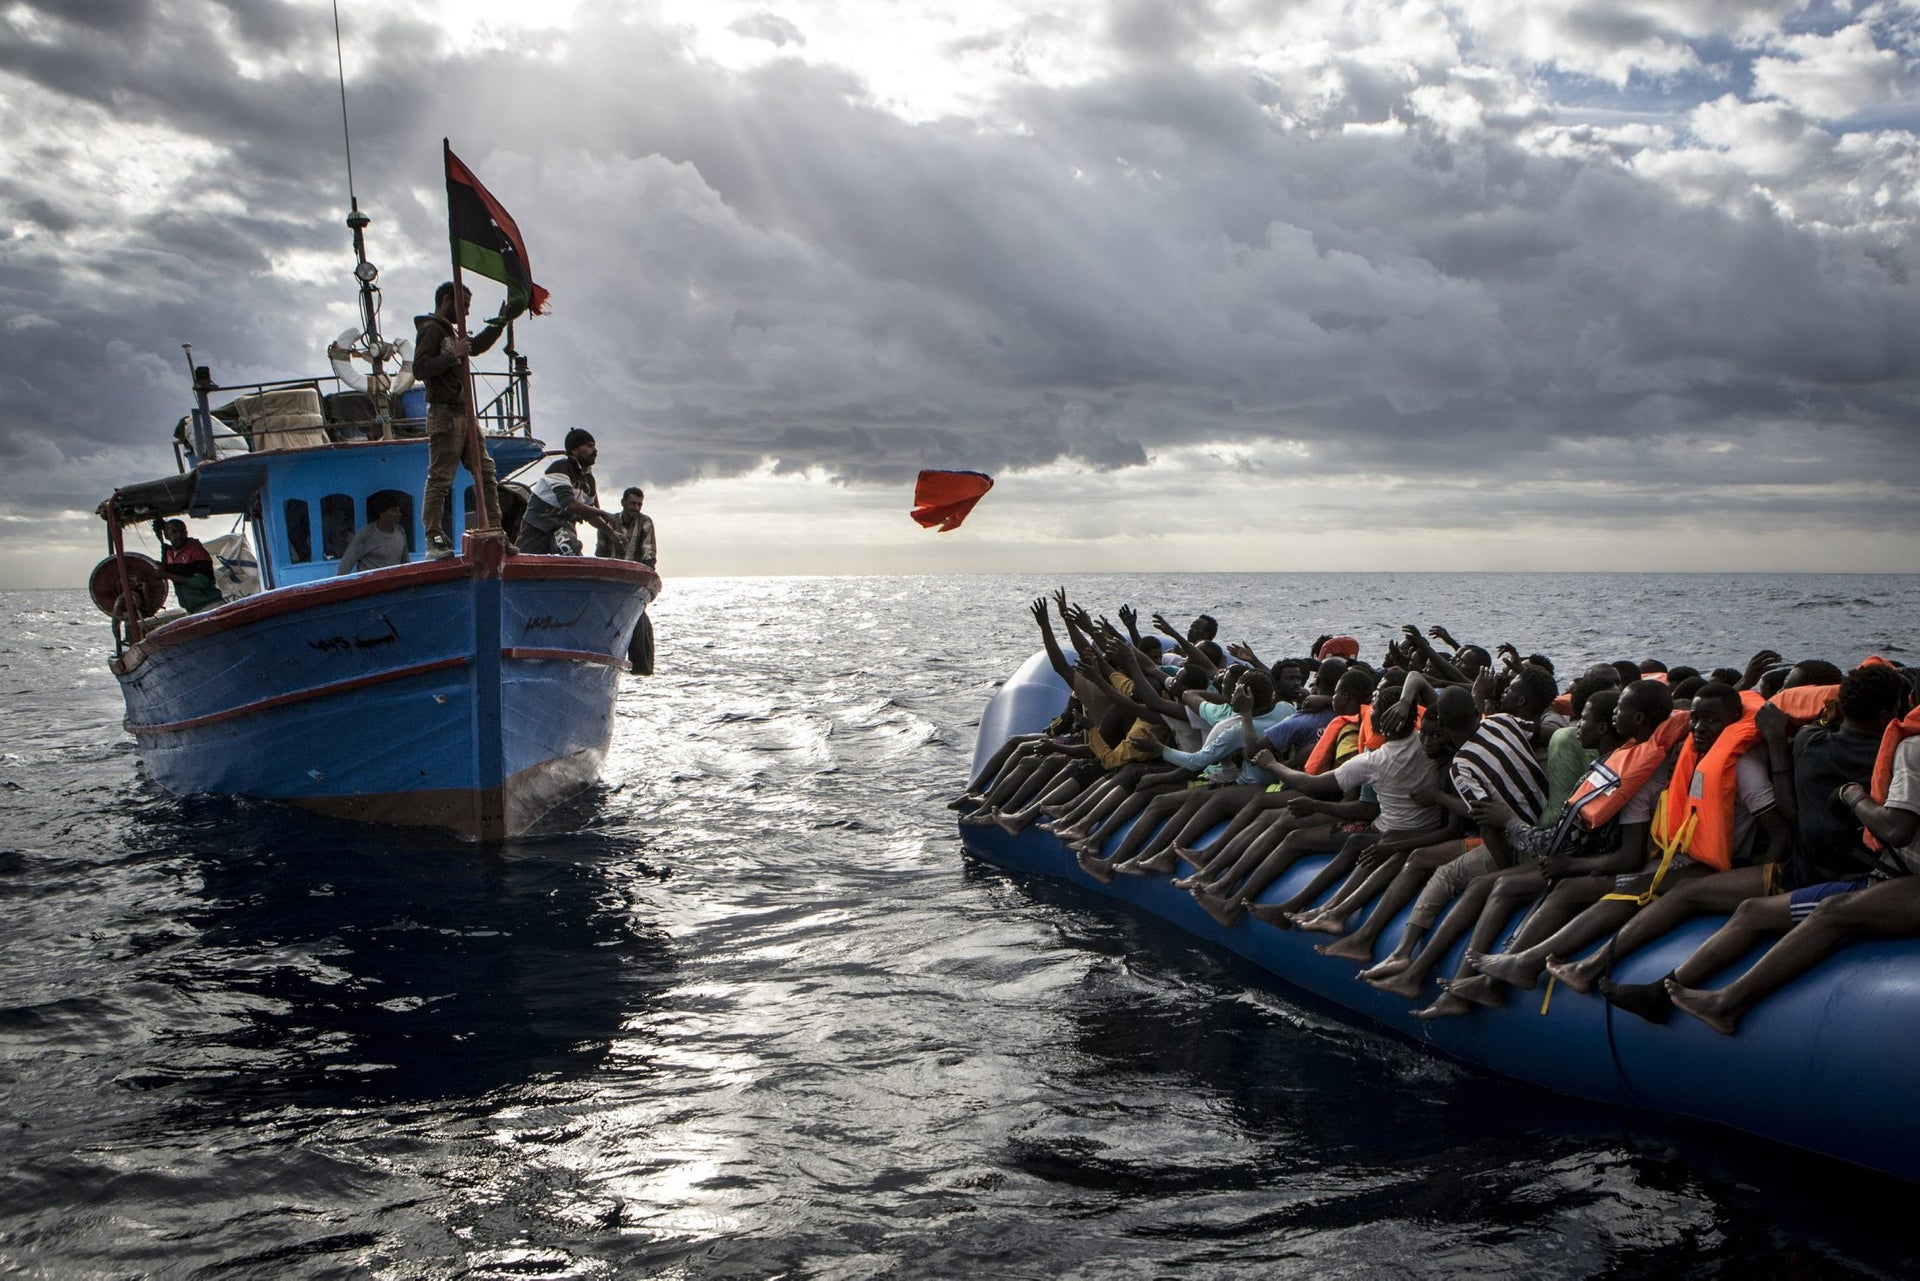 Spot News, third prize stories - Libyan fishermen throw a life jacket at a rubber boat full of migrants.